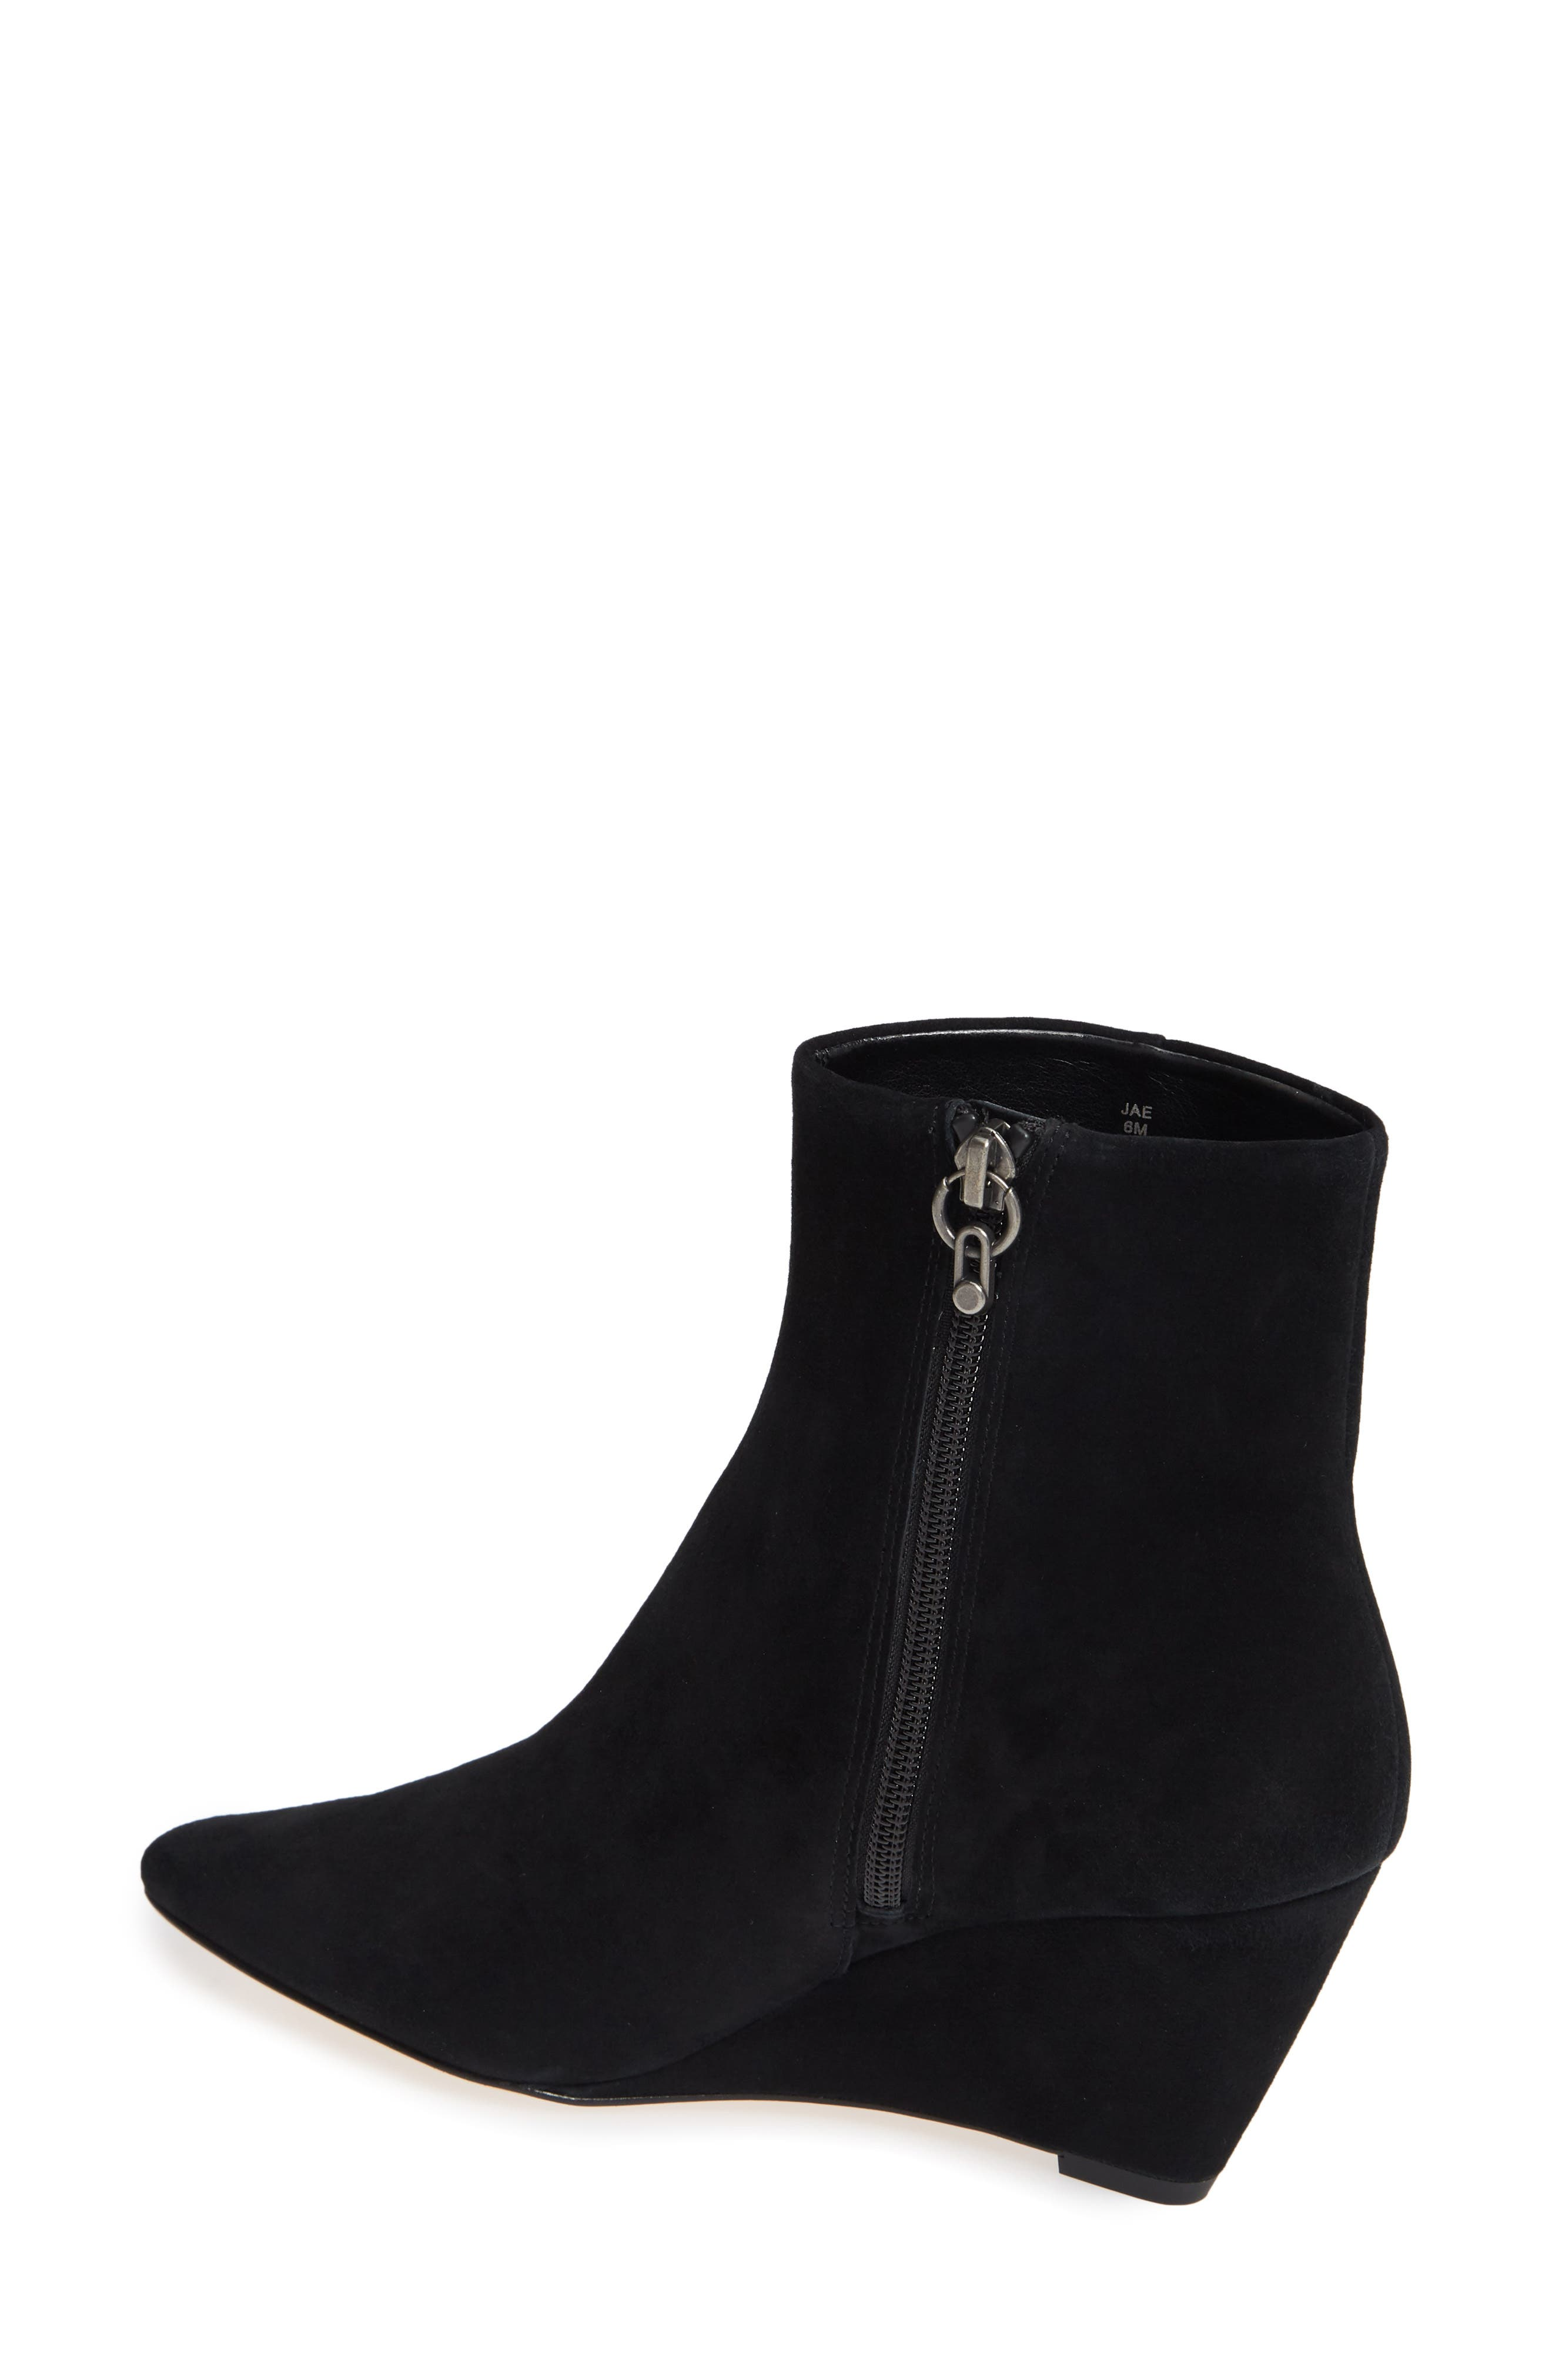 Jae Wedge Bootie,                             Alternate thumbnail 2, color,                             BLACK